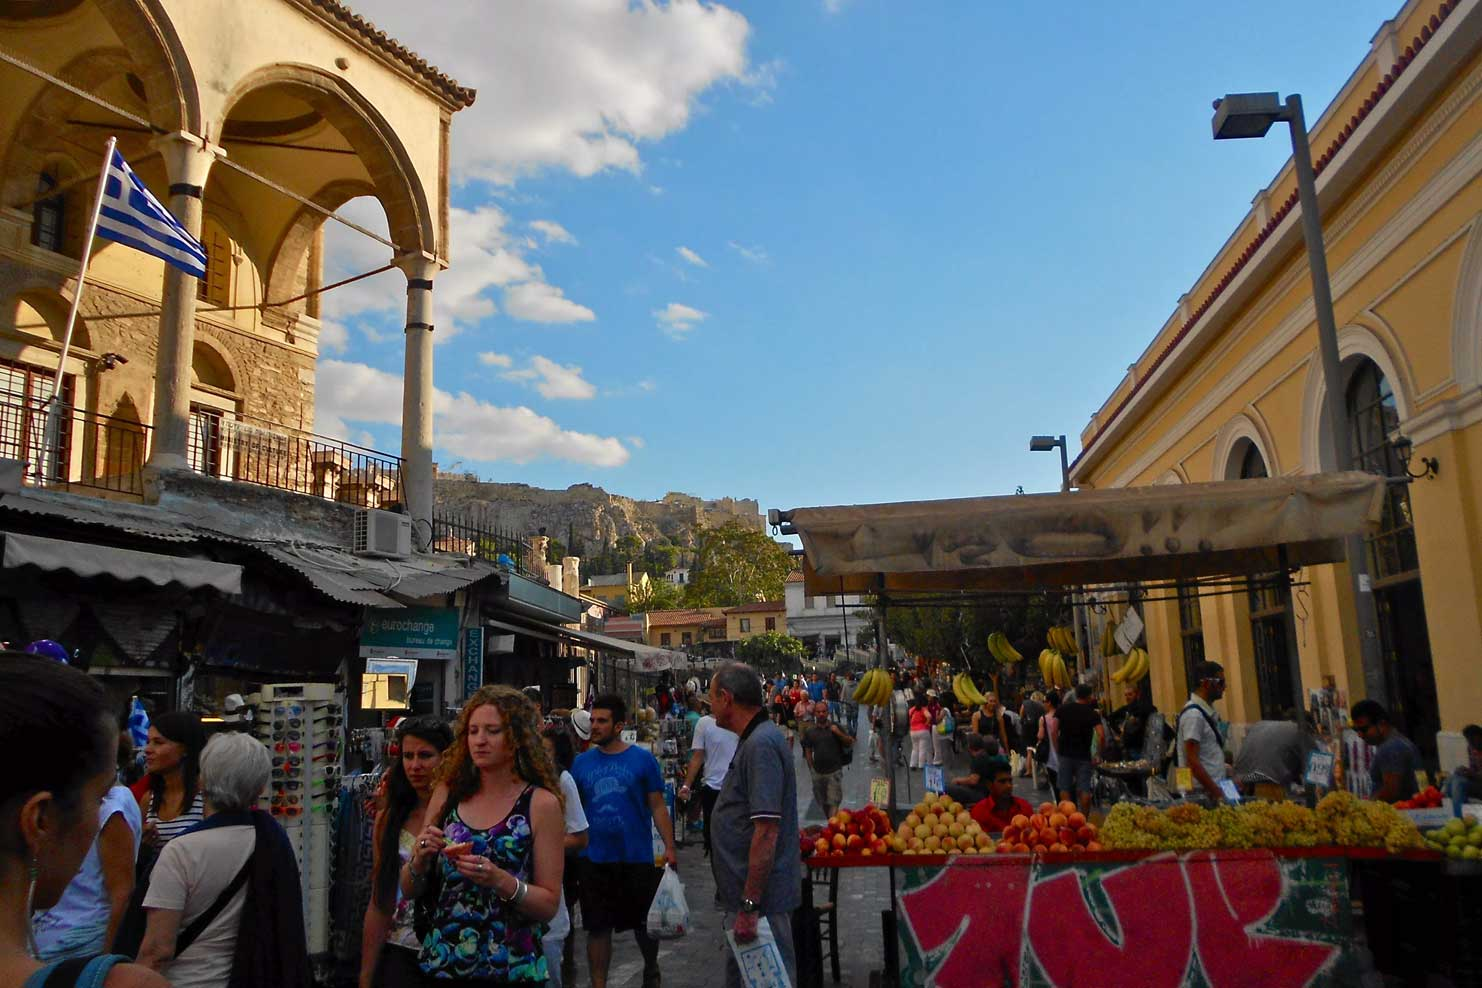 006-Athens-City-Stroll-&-Markets